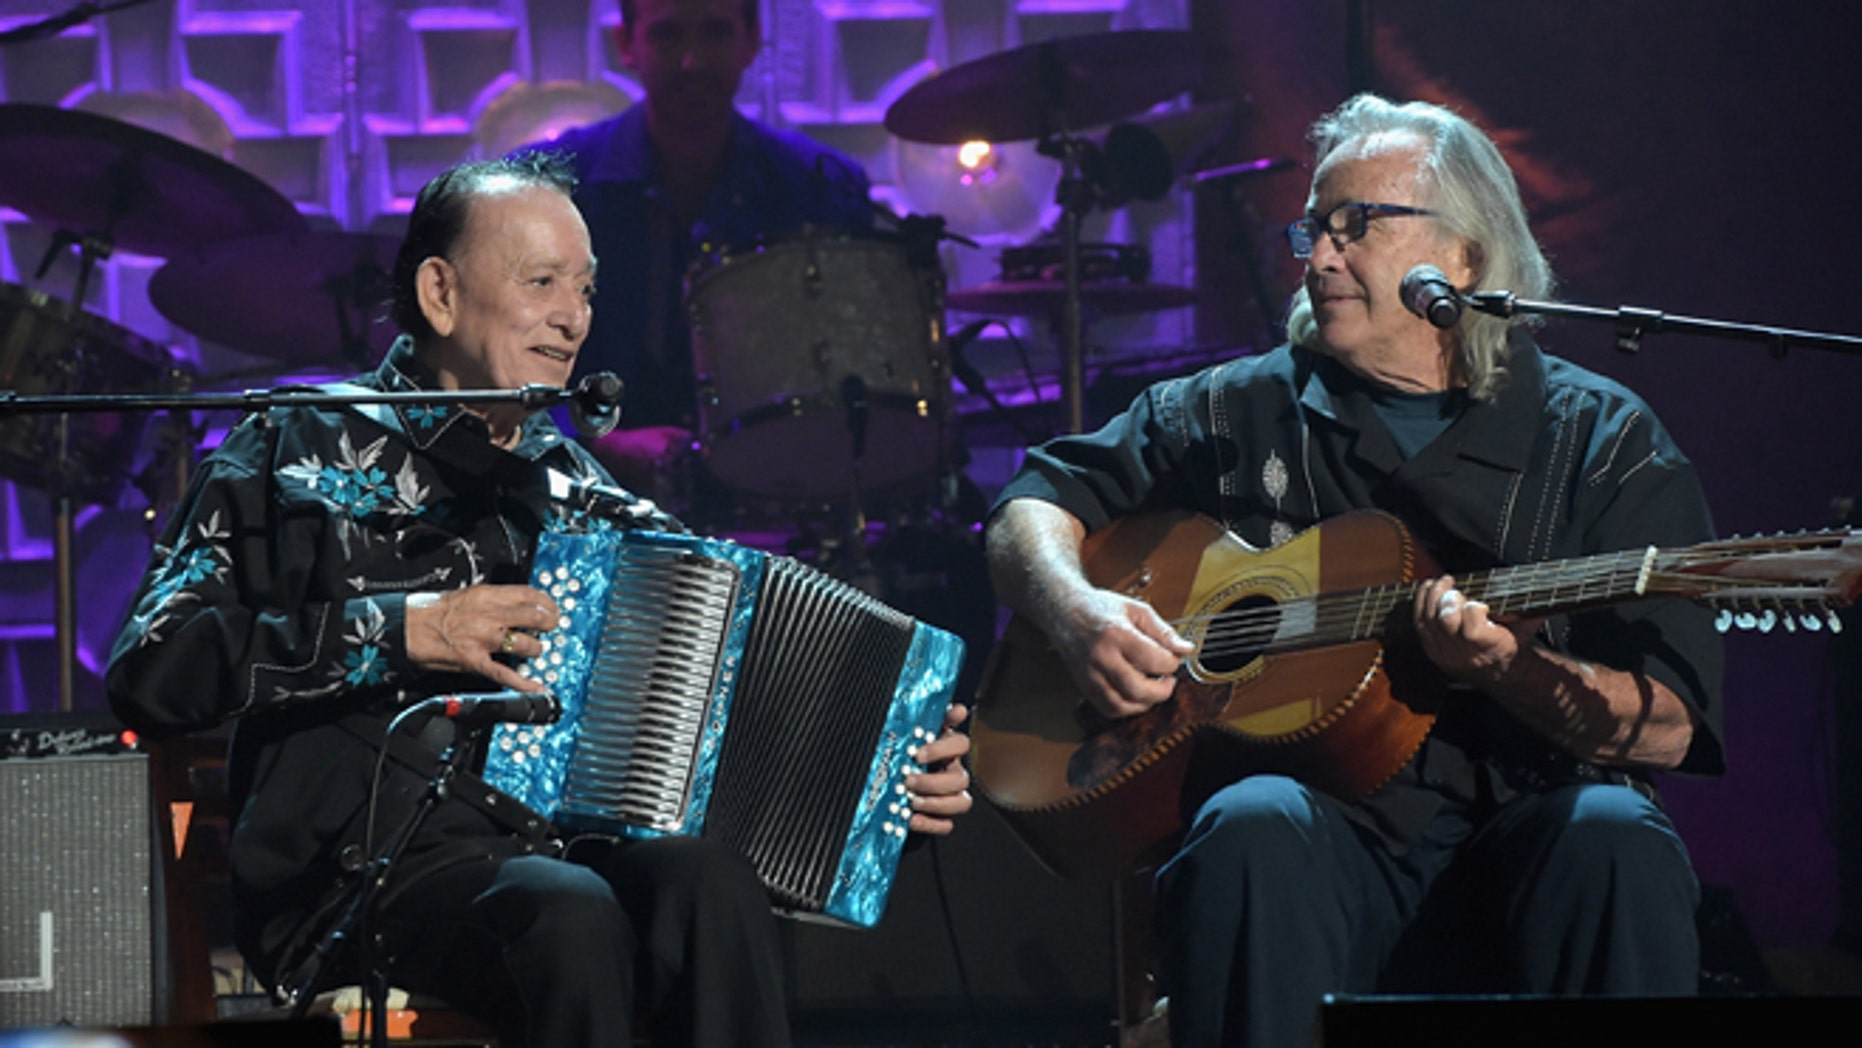 Flaco Jimenez and Ry Cooder at the Ryman Auditorium on September 17, 2014 in Nashville, Tennessee.